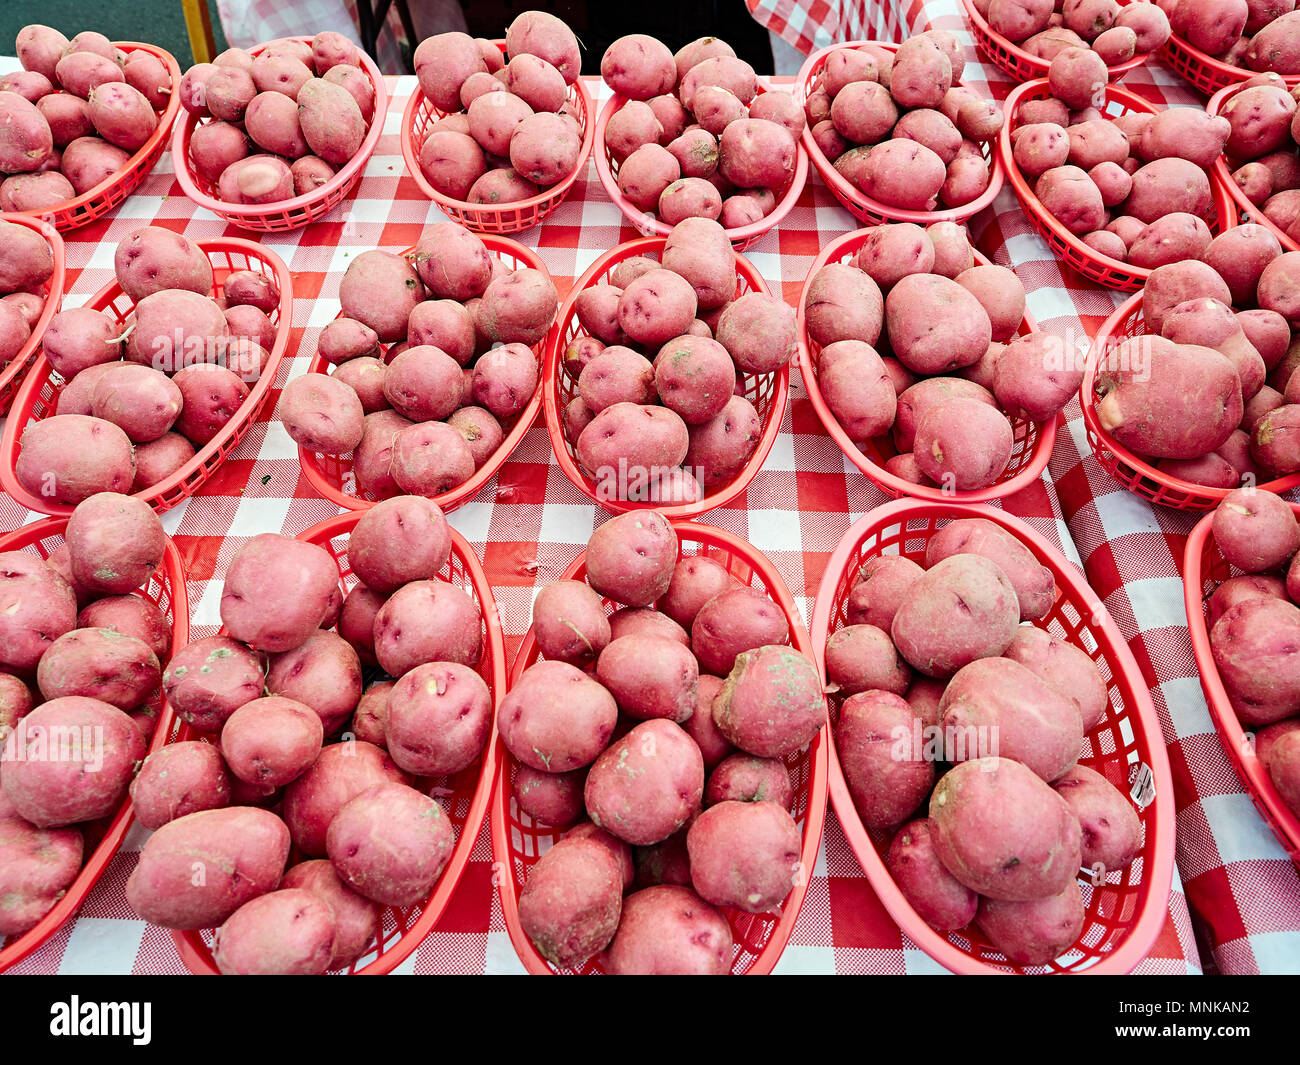 Fresh new potatoes of new harvest on display in baskets, for sale at the local farmers market in Montgomery Alabama, USA. - Stock Image